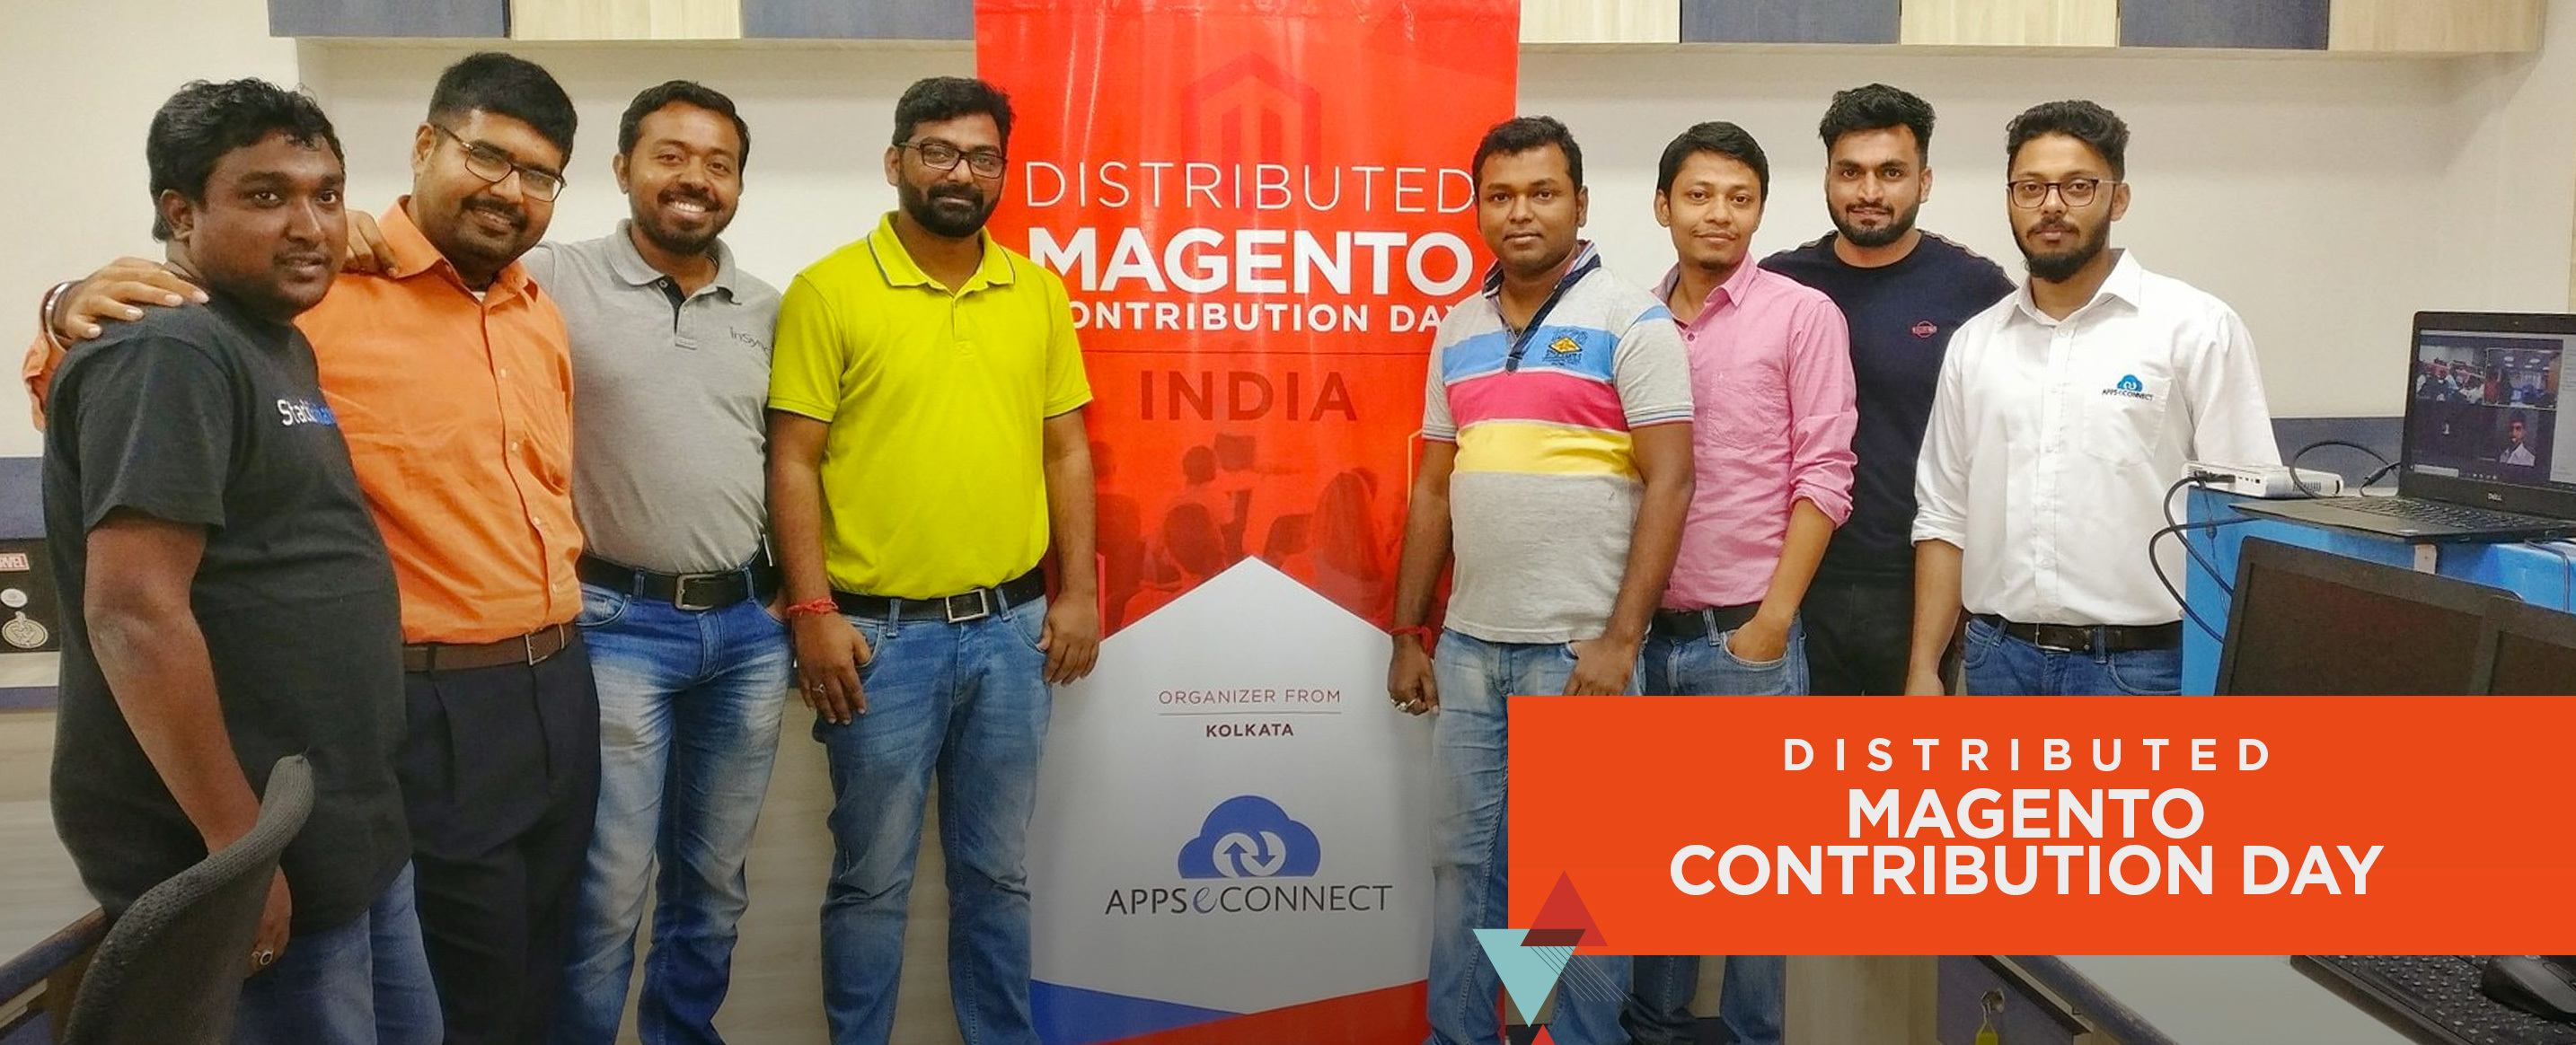 Distributed-magento-contribution-day-2019-india